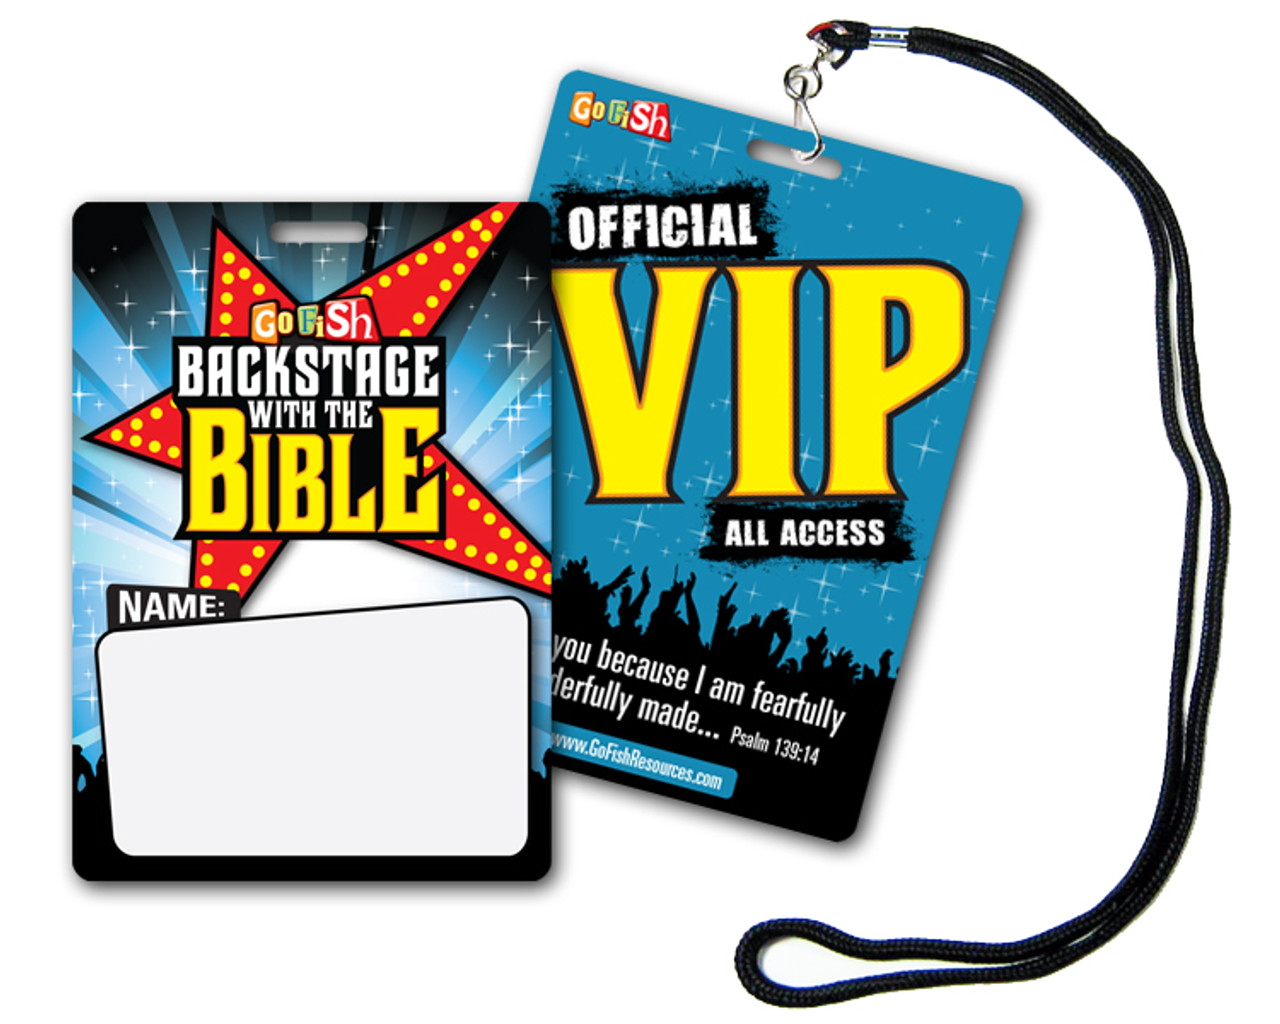 Backstage With The Bible VIP Pass & Lanyards (20-pack)